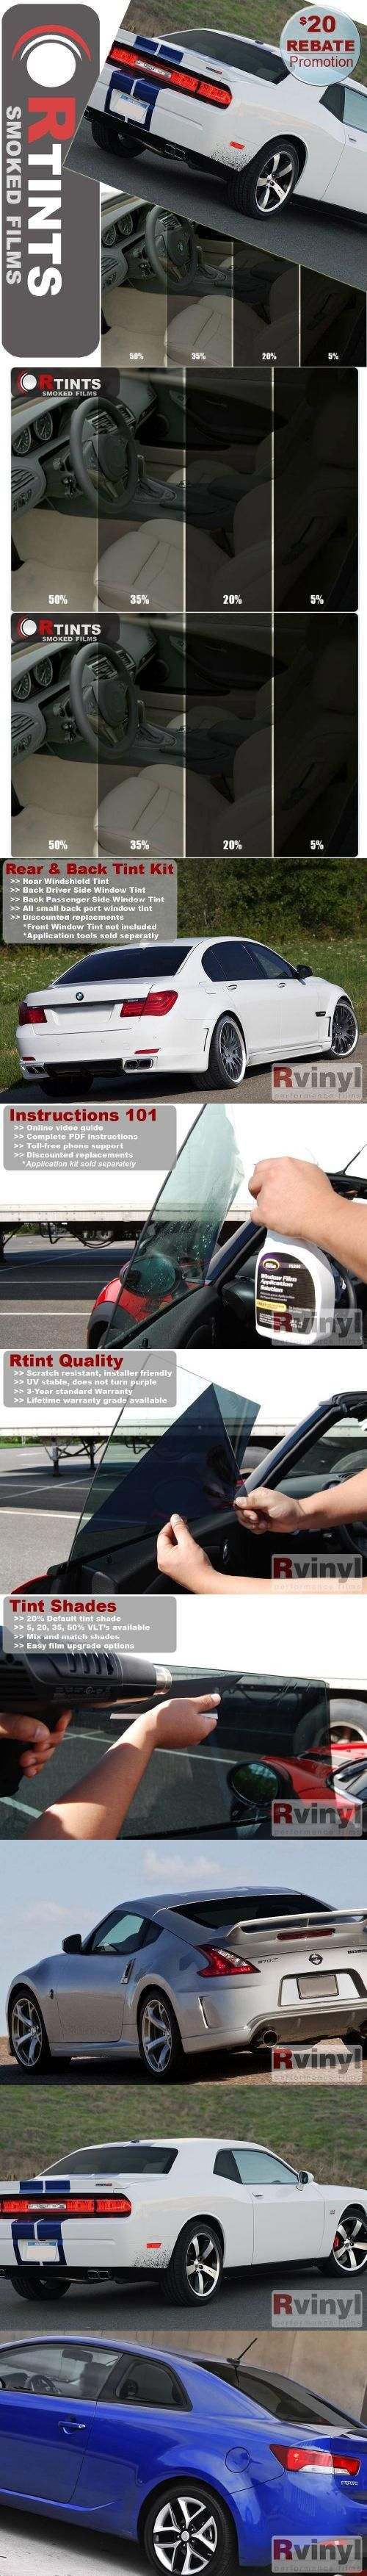 Back & Rear Glass Window Tint Kit - Dodge Shadow 4 Door Hatchback 1990 1991 1992 1993 1994 - 5% Back & Rear Windshield Back & Rear pre-cut window tint kit (back door & rear windshield) for your vehicle made by Rtint.. 100 Percent Satisfaction Guarantee, 5 year warranty, window tint kit for your car, truck or SUV.. Step by step video installation application guide online. Toll free phone support pr... #Rtint #Automotive_Parts_and_Accessories